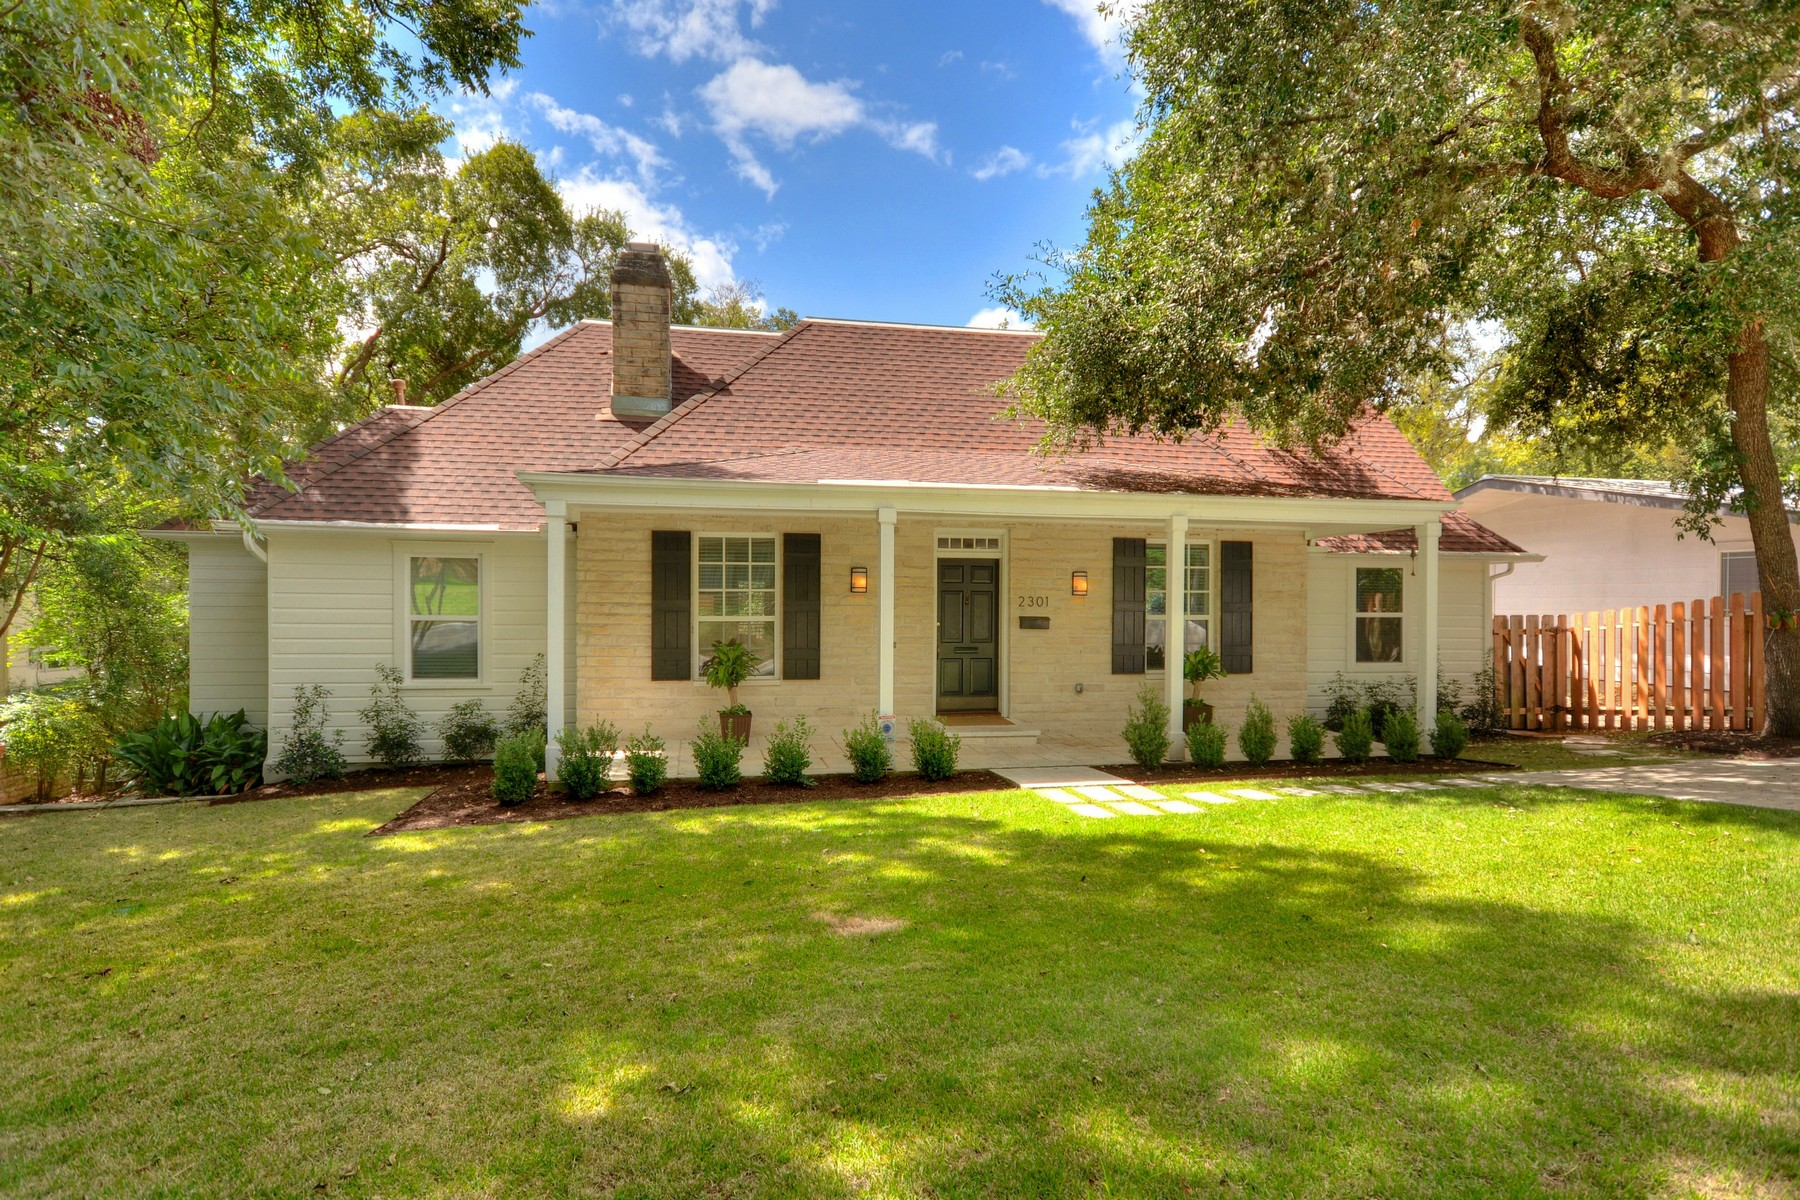 Single Family Home for Sale at Remodeled Jewel 2301 Bowman Ave Austin, Texas 78703 United States